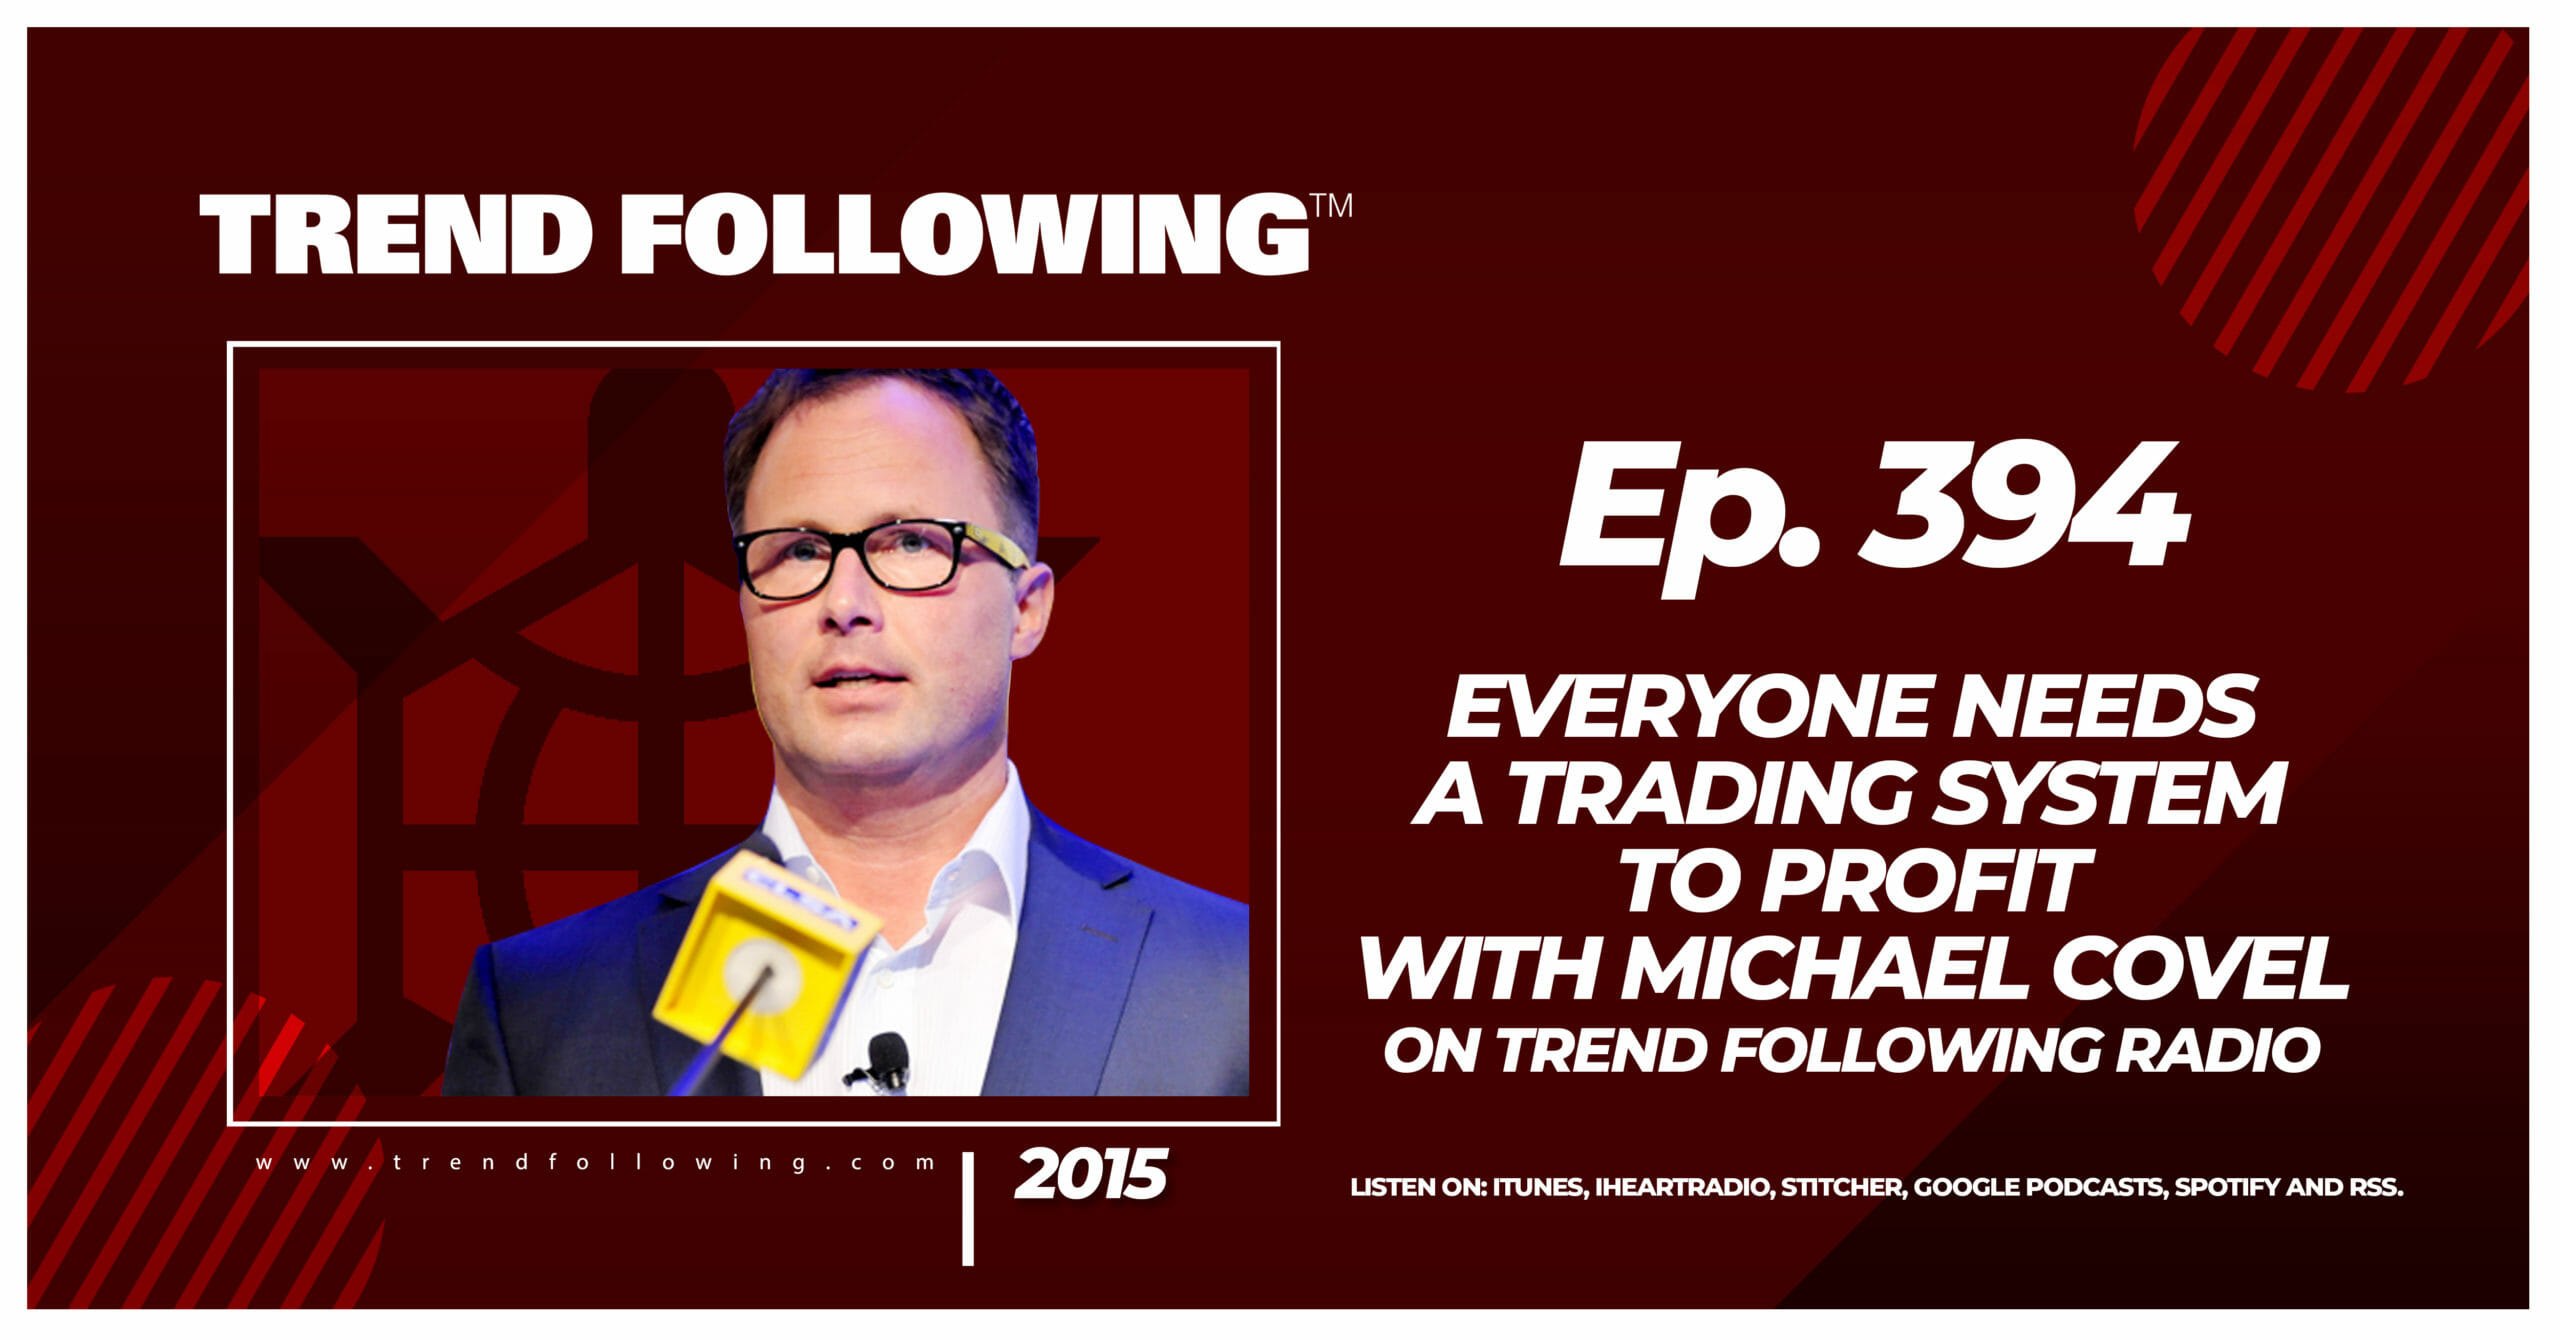 Everyone Needs a Trading System to Profit with Michael Covel on Trend Following Radio